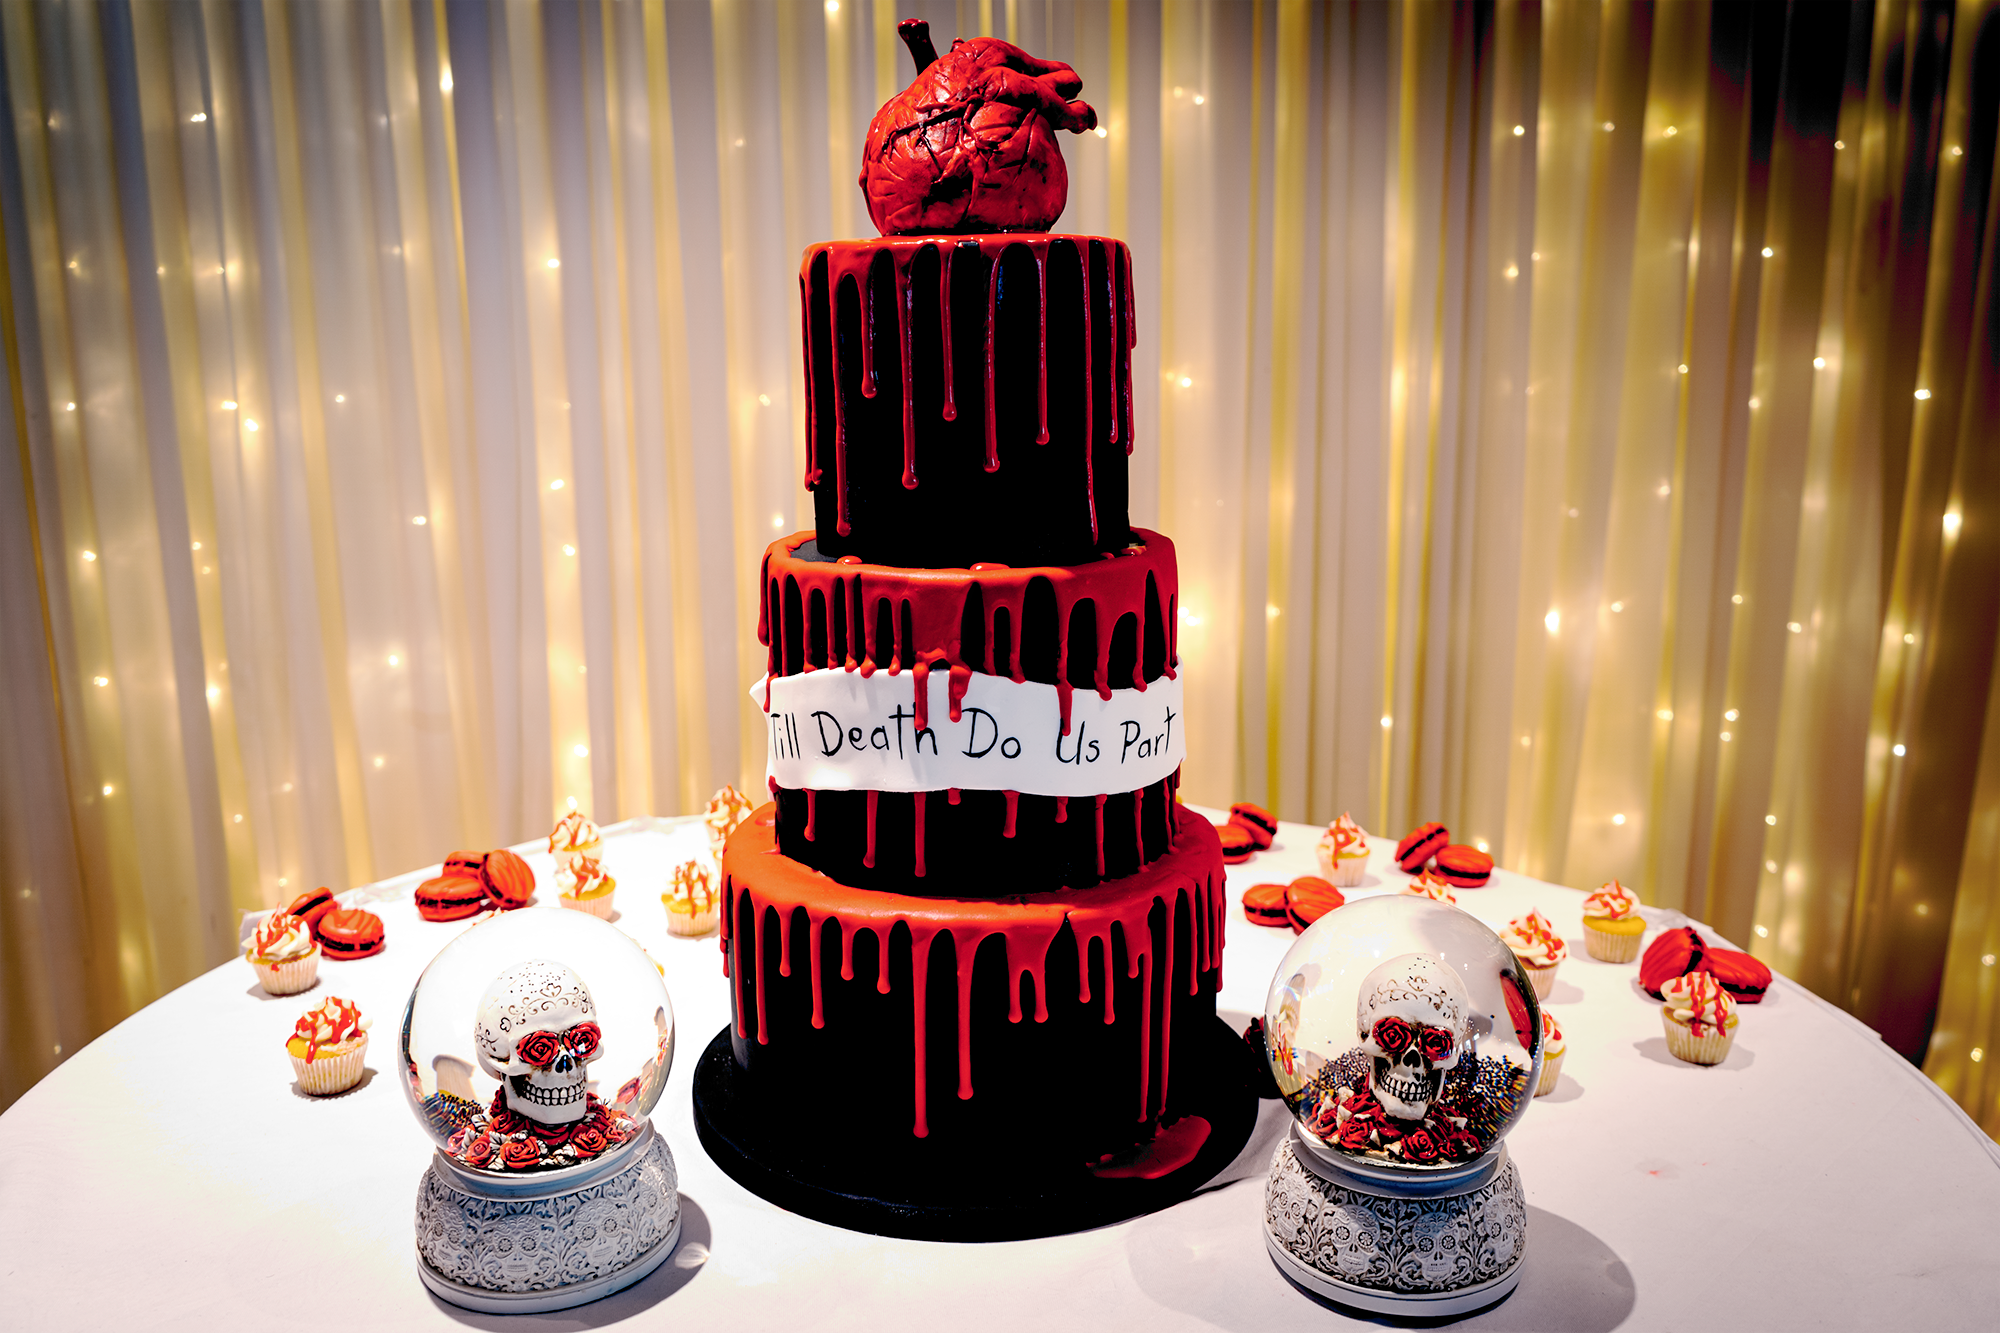 Black and red wedding-cake with heart topper